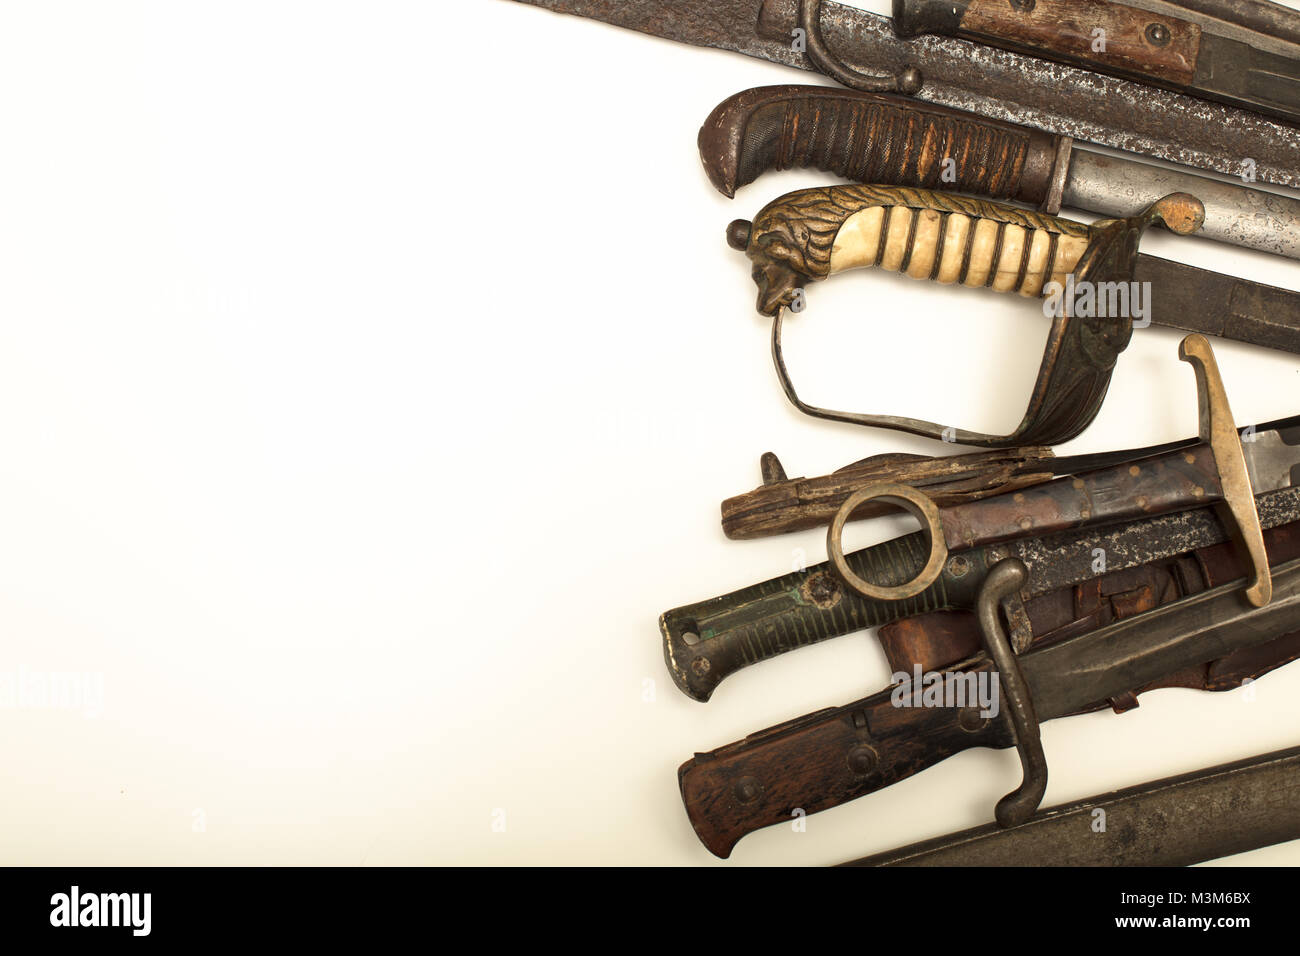 Collection of vintage weapons with the hilts of old swords and daggers forming a side border over white with copy - Stock Image